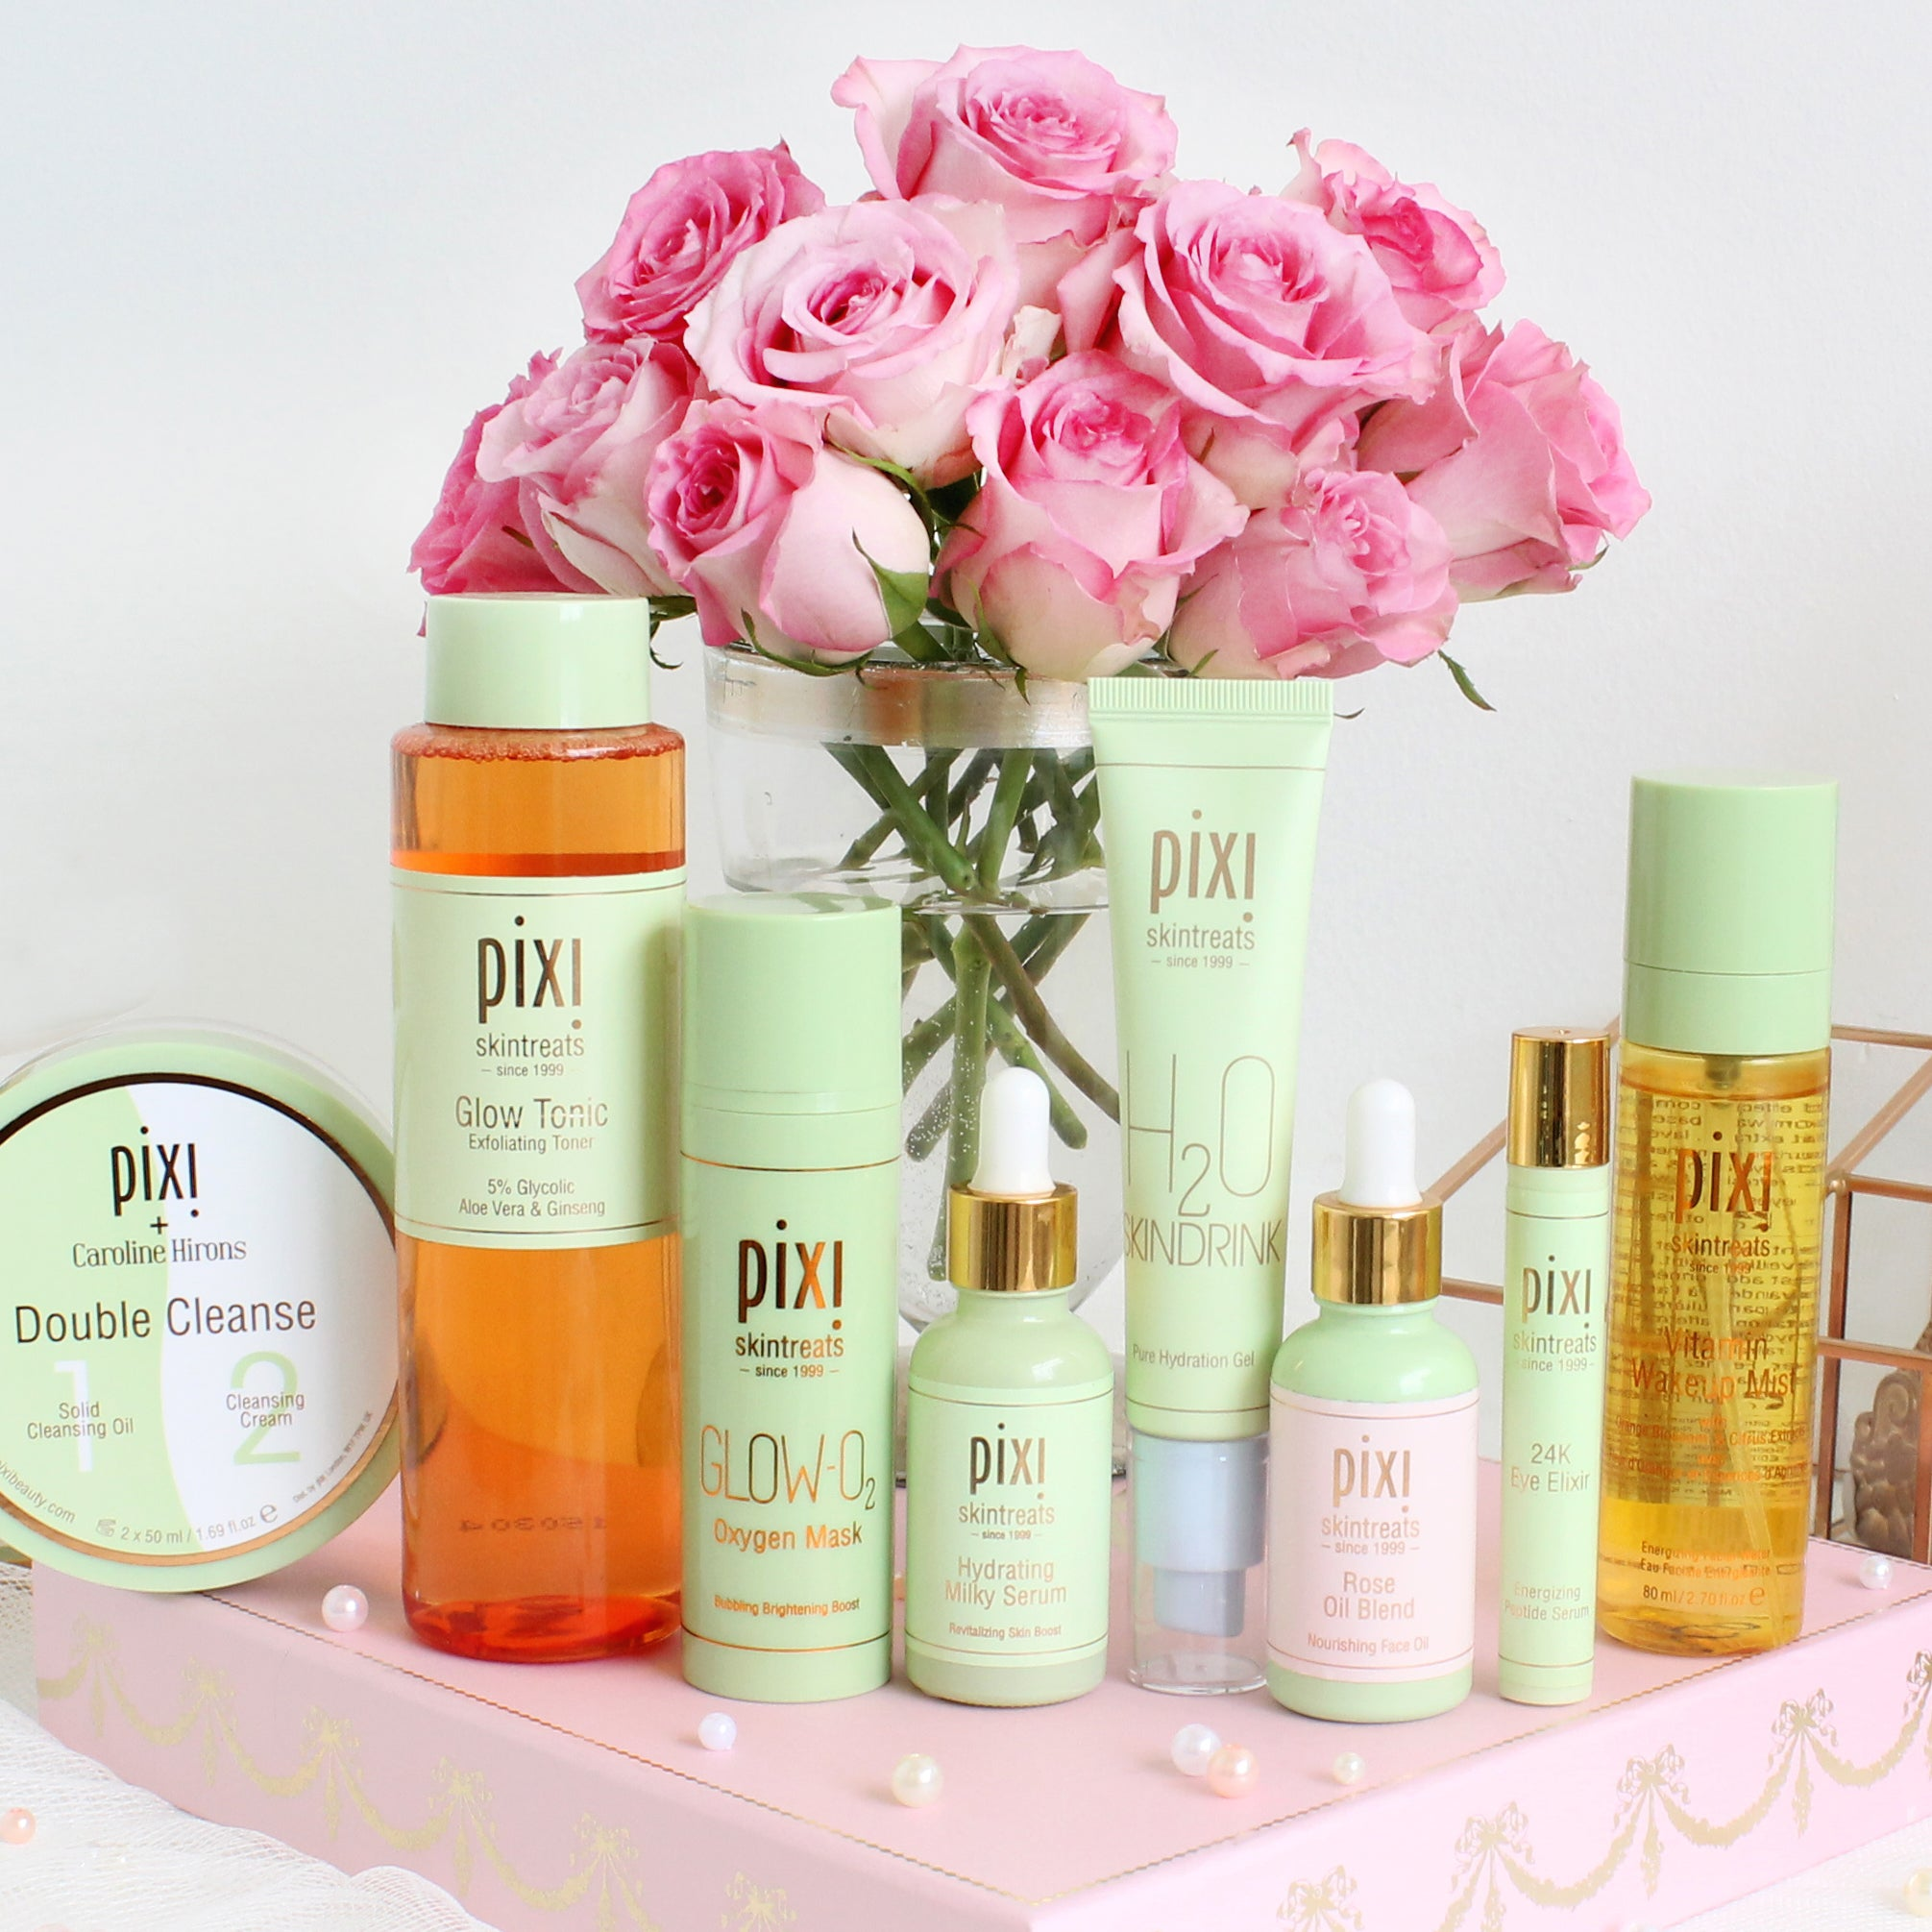 Pixi Beauty Bridal Skincare Routine